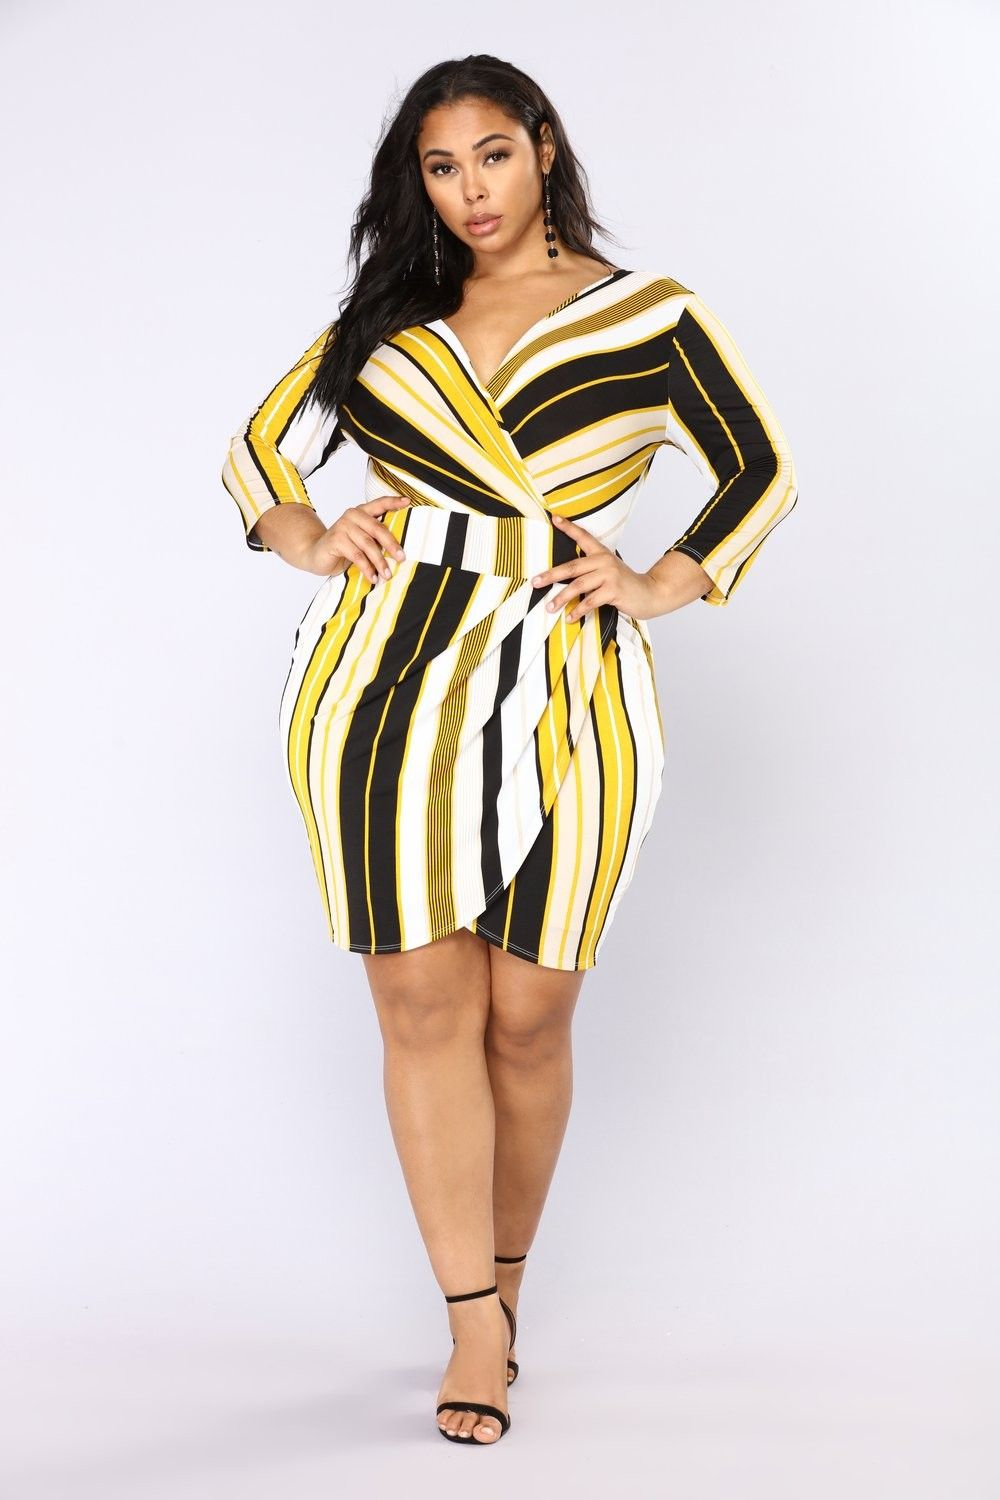 ca2c3c284 Plus Size Mayra Striped Midi Dress - Mustard Multi  29.99  fashion  ootd   outfit